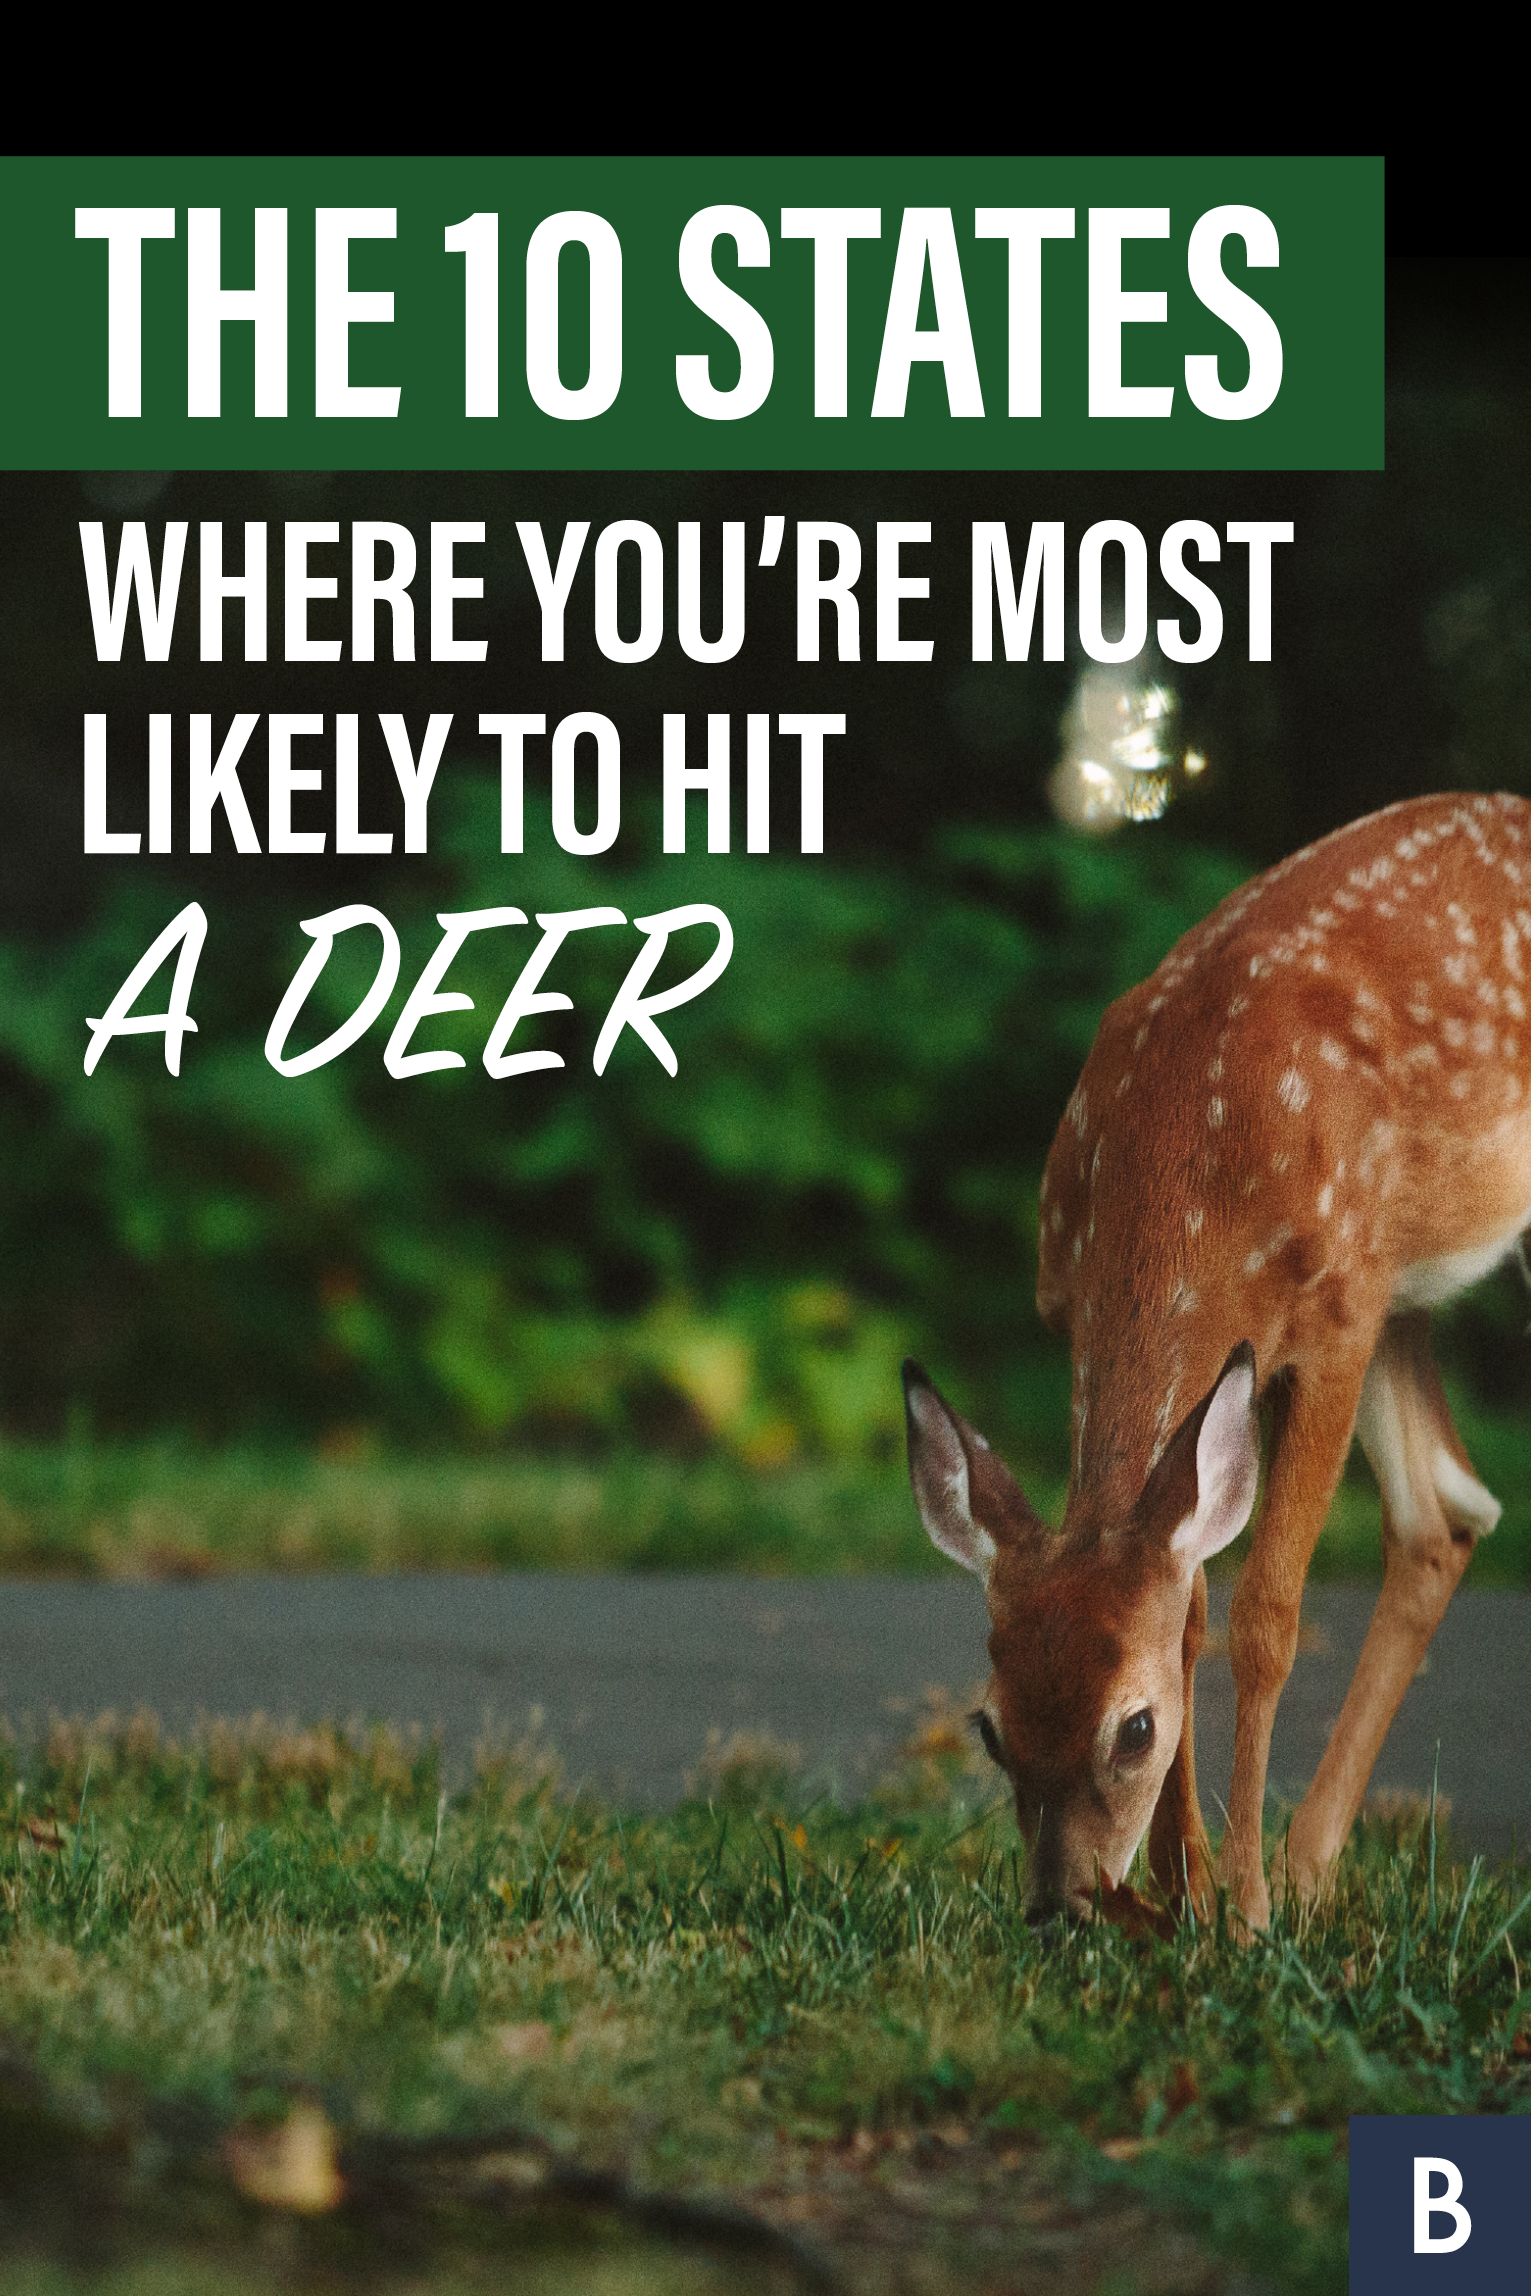 Antler Alert See If You Live In One Of The 10 States With A High Rate For Collisions With Deer Photo Credit Vladimir Kudinov Unsp Car Loans Auto Loan Rates